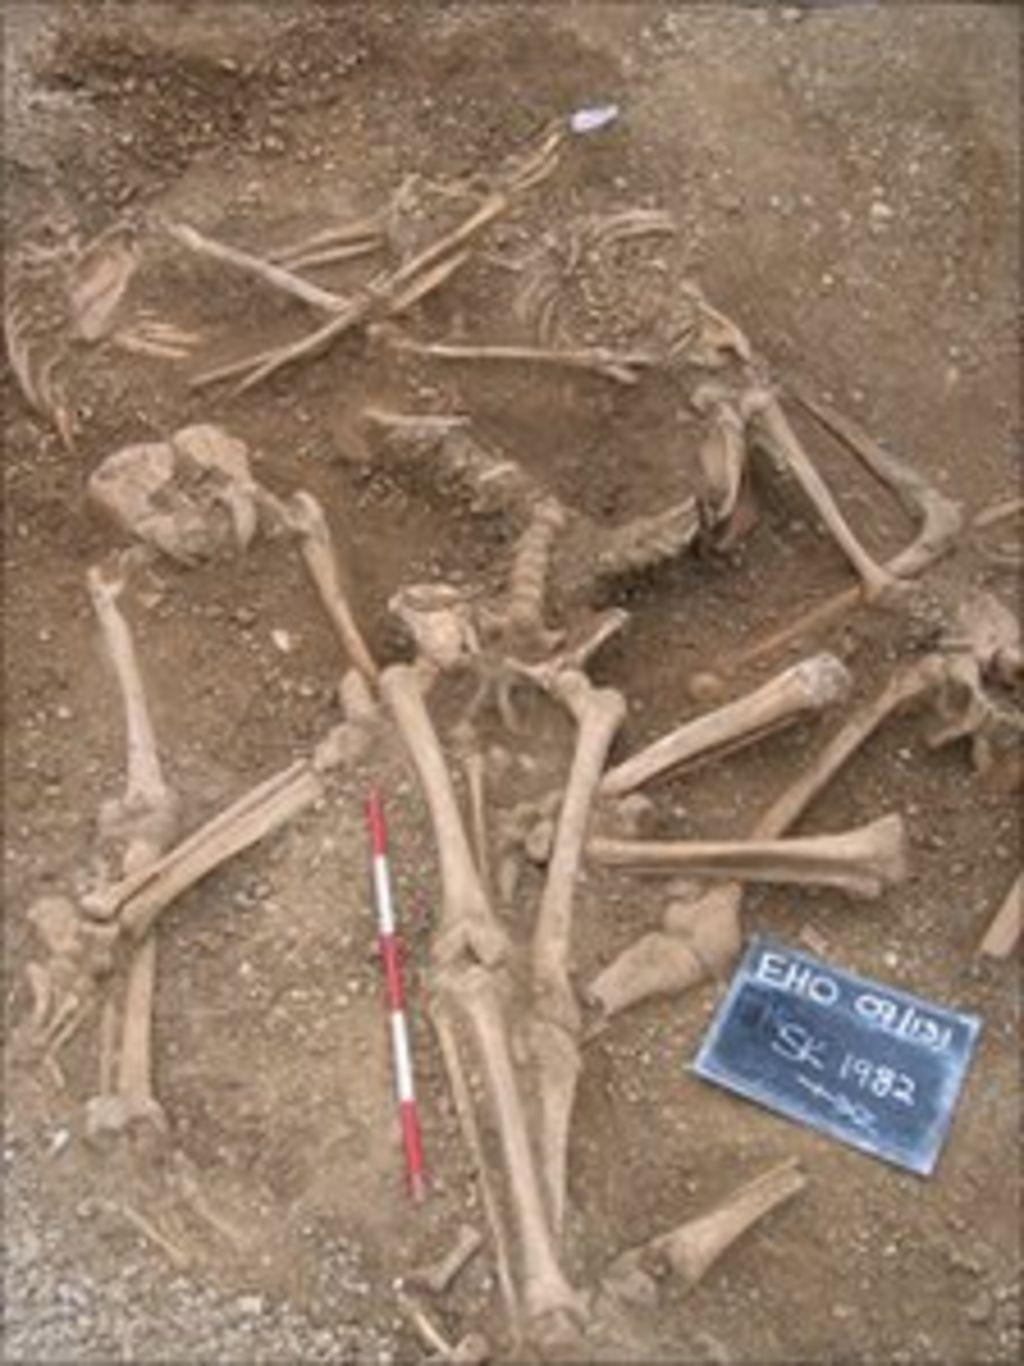 Angleterre - Des Vikings victimes du massacre de la St Brice au St John's College, Oxford - Photo: BBC